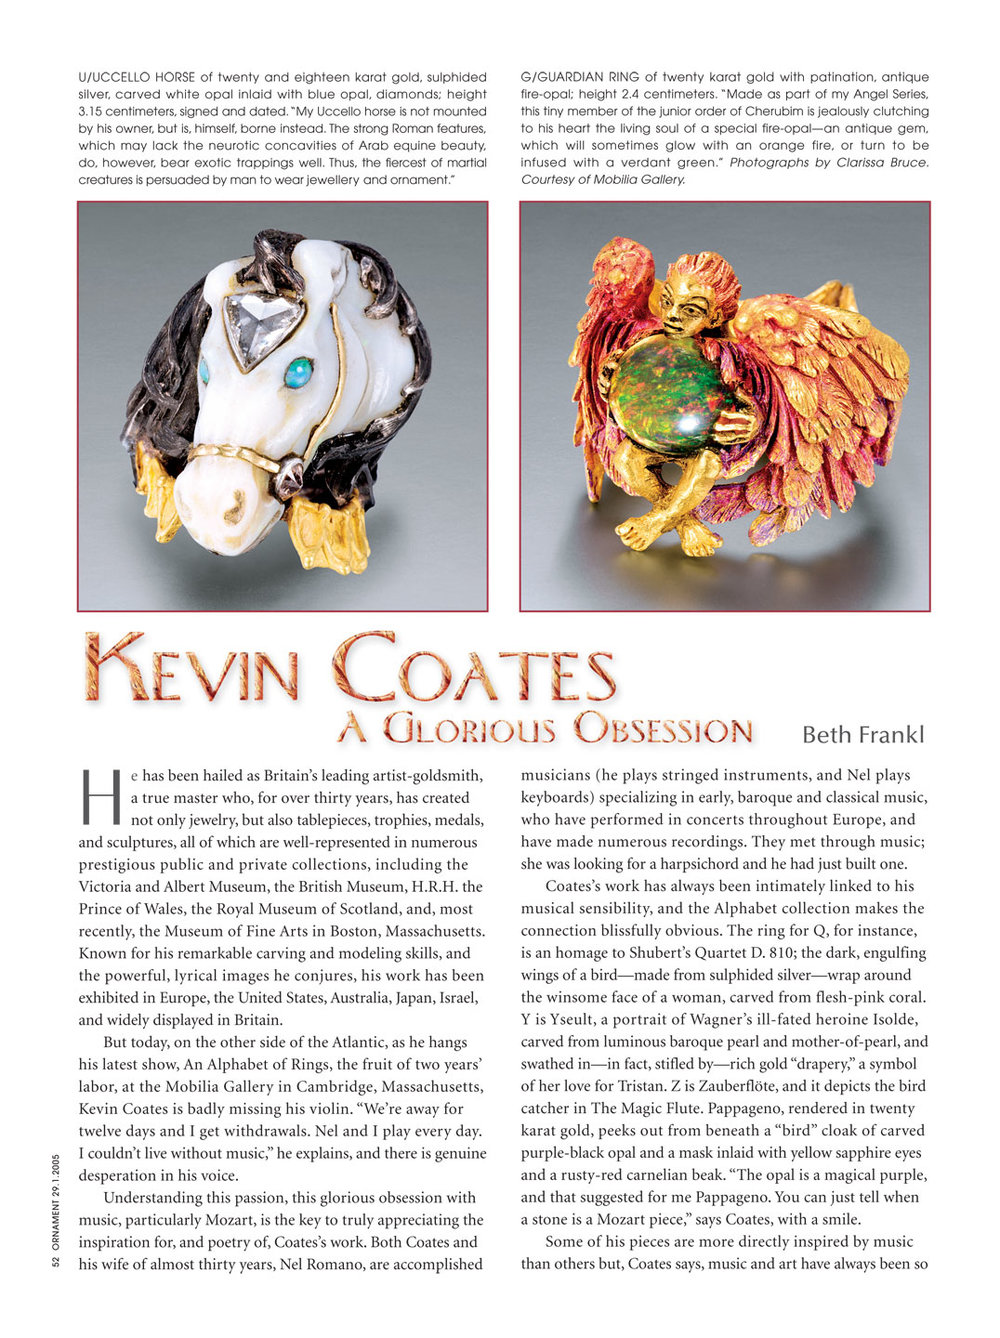 Orn29_1_Kevin_Coates-Cover.jpg